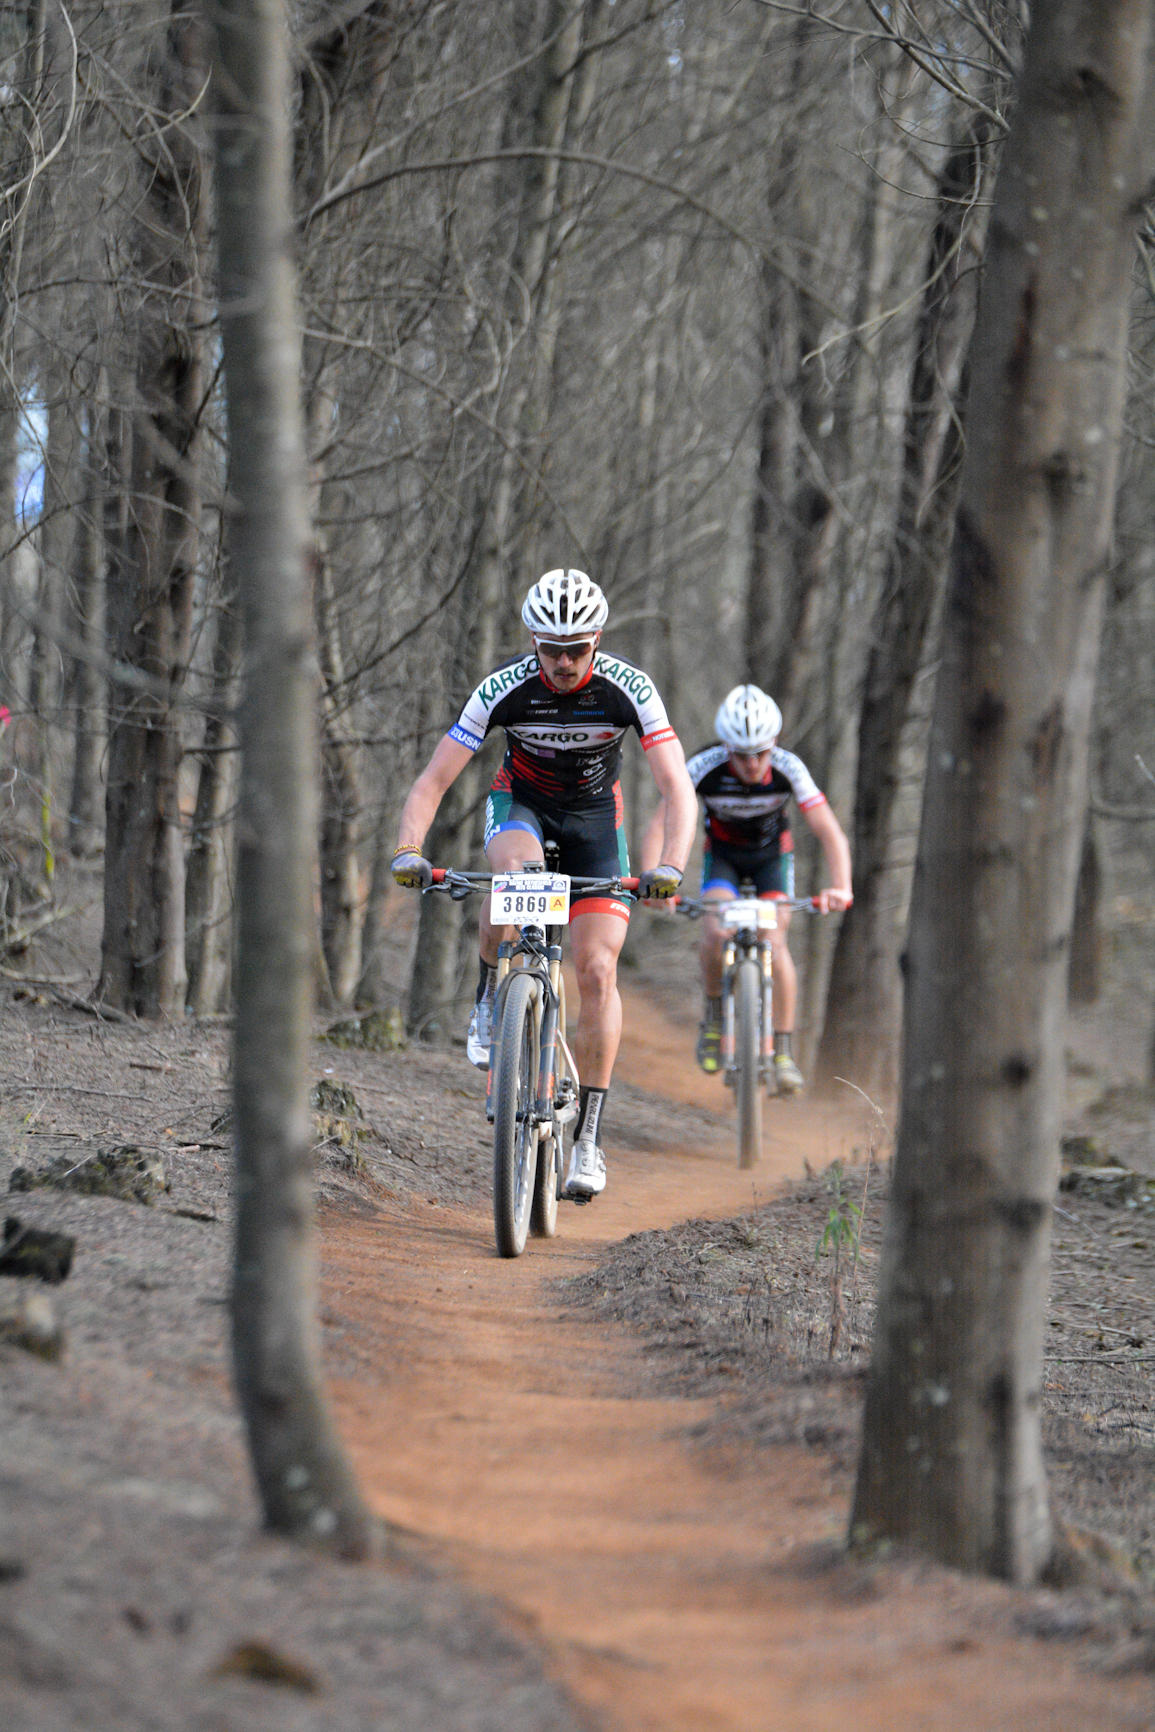 The entries of Kargo Pro MTB Team's Brendon Davids (front) and Alan Hatherly (back) has added a new dimension to the race for the overall spoils at Sunday's Sappi Scottburgh MTB Race.